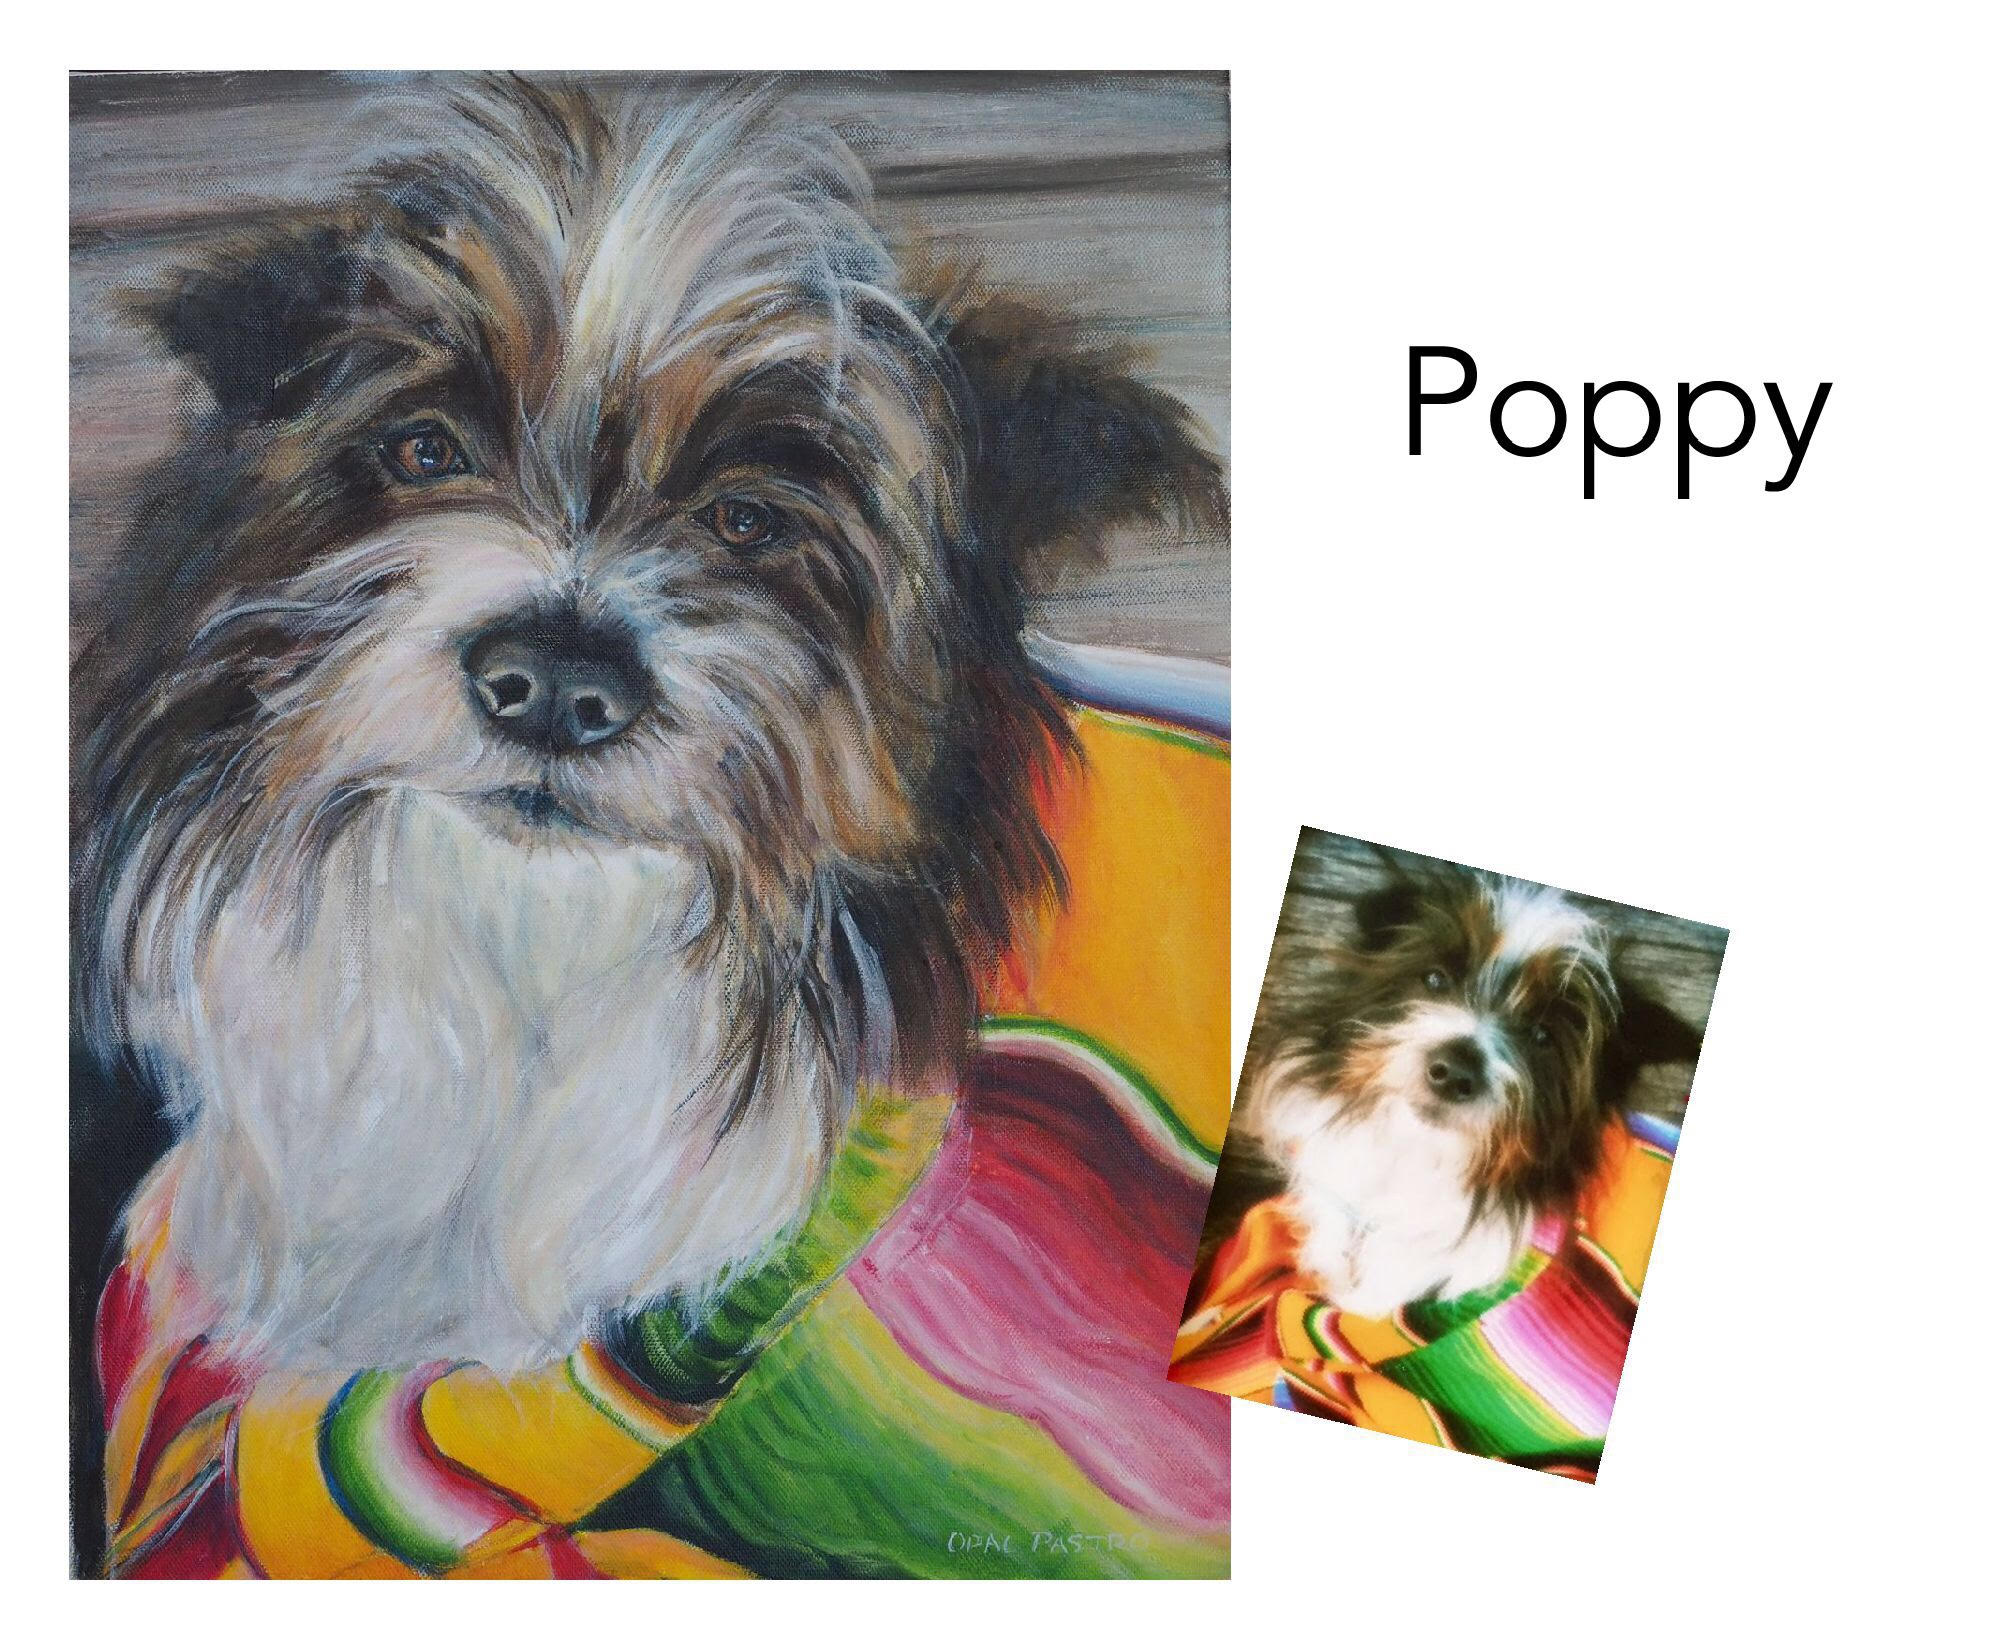 """Terrier mix - Acrylic on canvas 14"""" x 18""""  (35.5cm x 45.72cm)Memorial portraitBellingen, NSW——————————Poppy was a sweet little companion that left a giant hole in her mum's heart when she passed away. Like many memorial portraits, clear photos were not available, but I was able to create a painting that captured Poppy's lovely nature. Her mum adores Poppy's memorial portrait as she says it is as though she is still with her."""